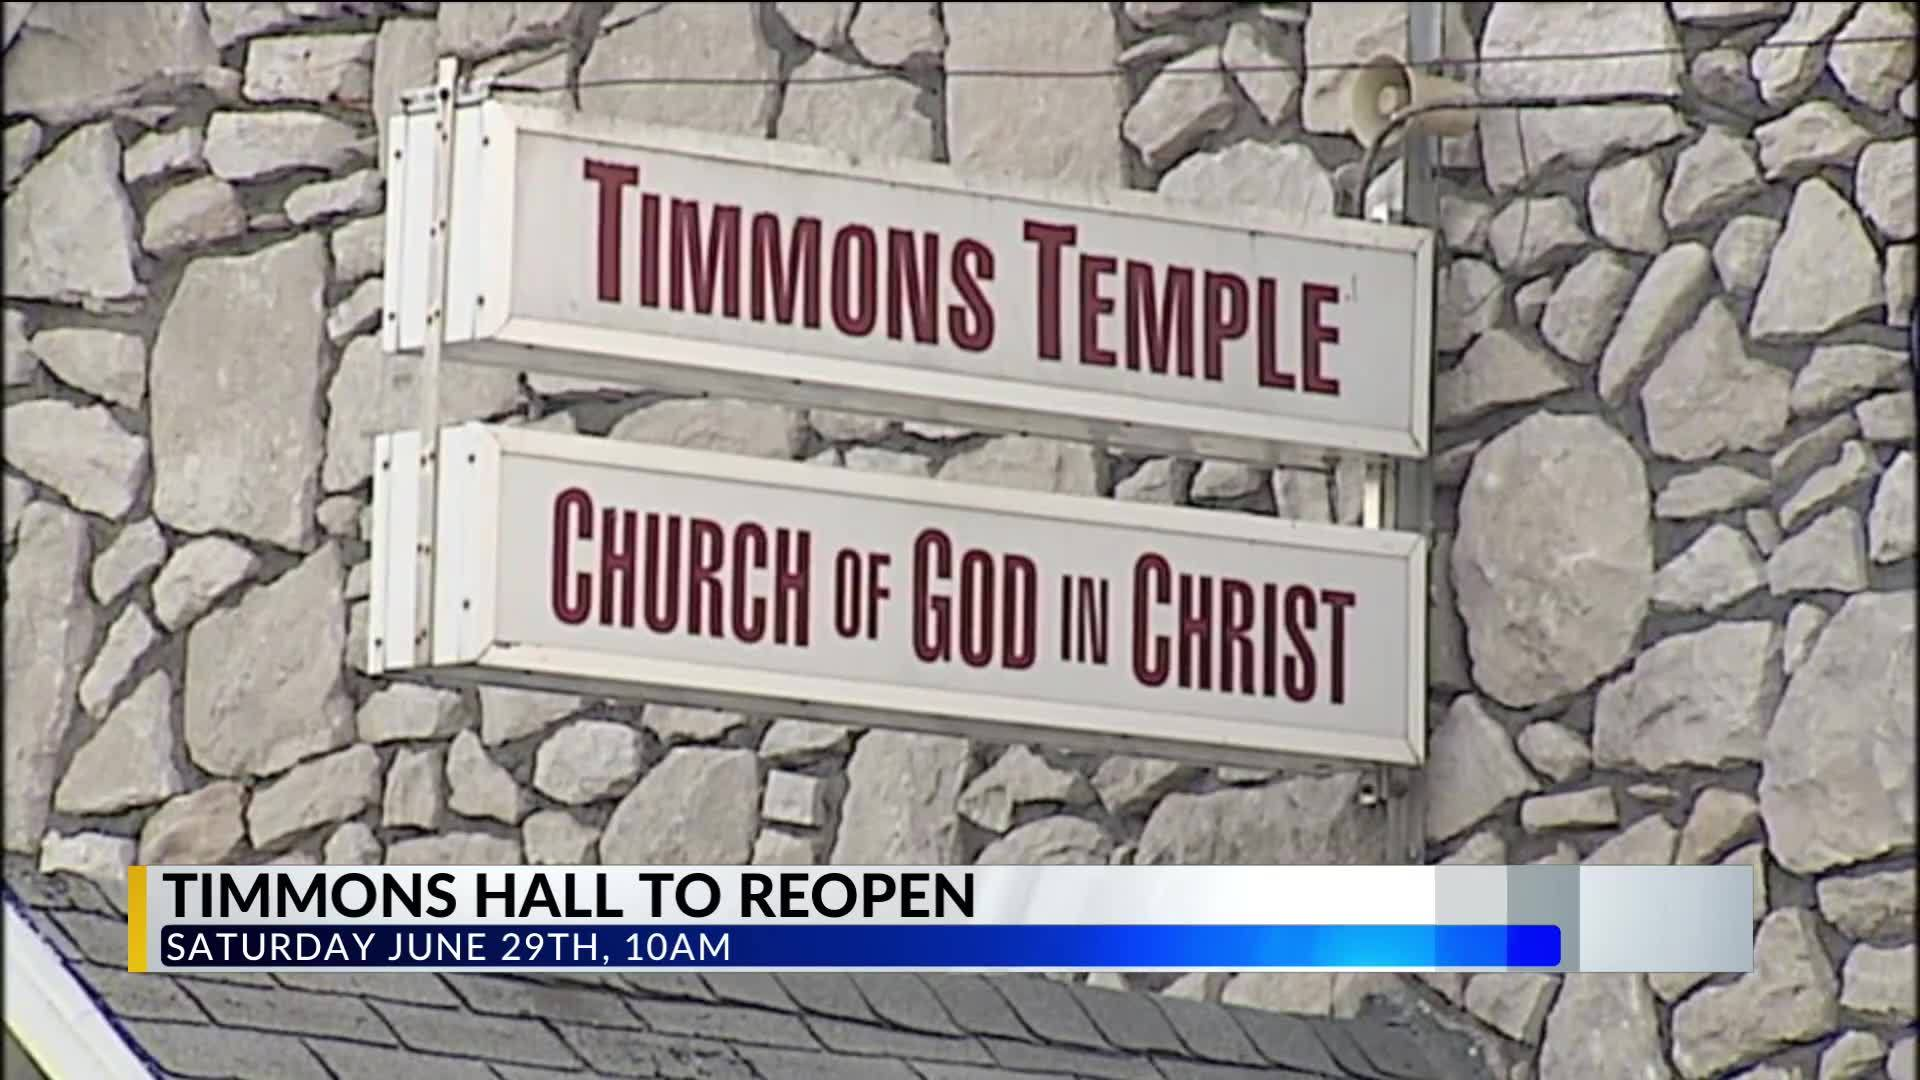 Timmons_Temple_will_open_its_doors_again_4_20190618031121